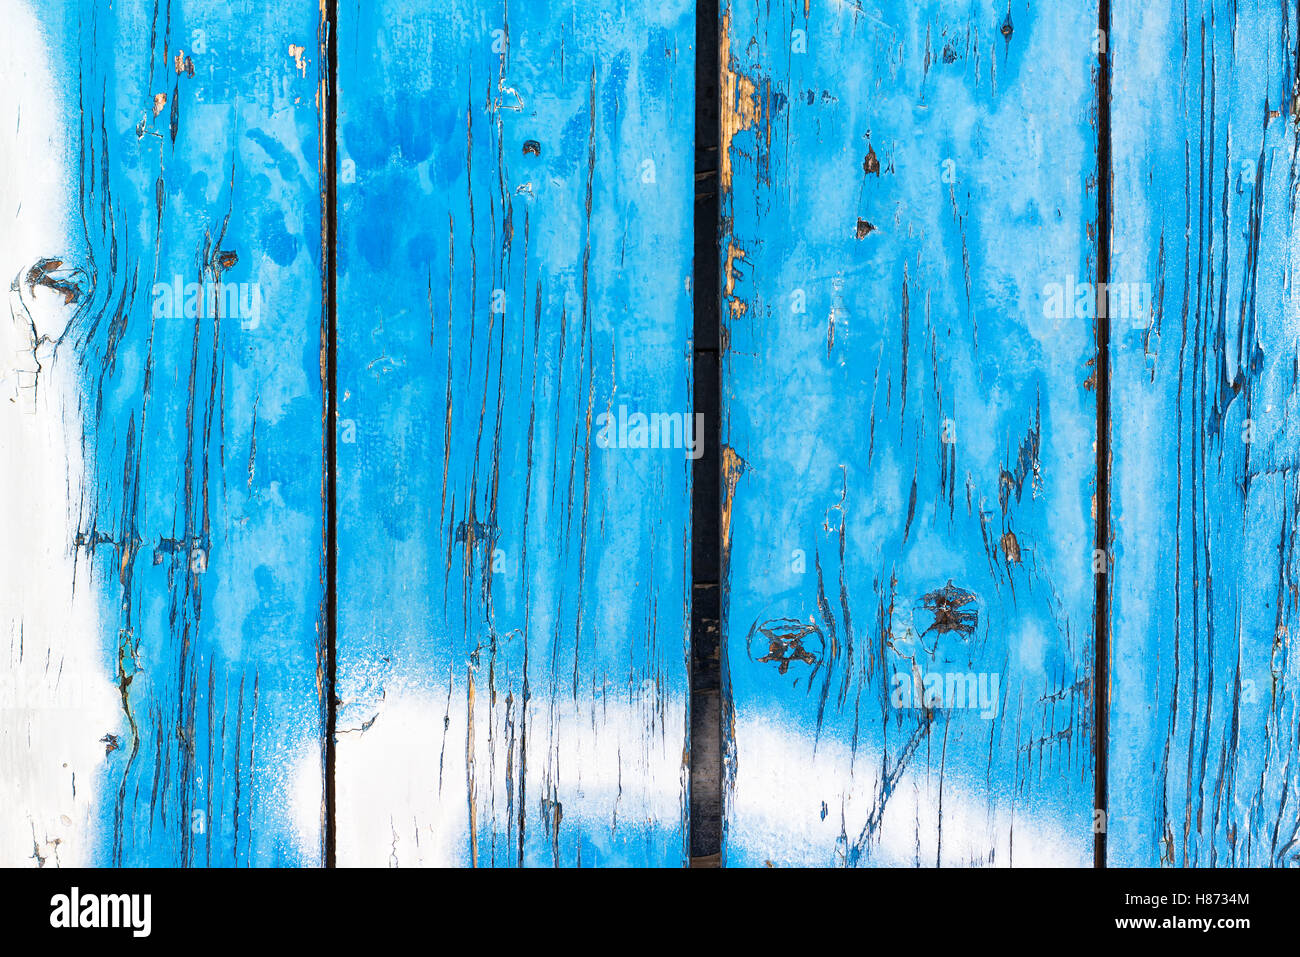 Rustic wooden texture, blue painted planks peeling off - Stock Image